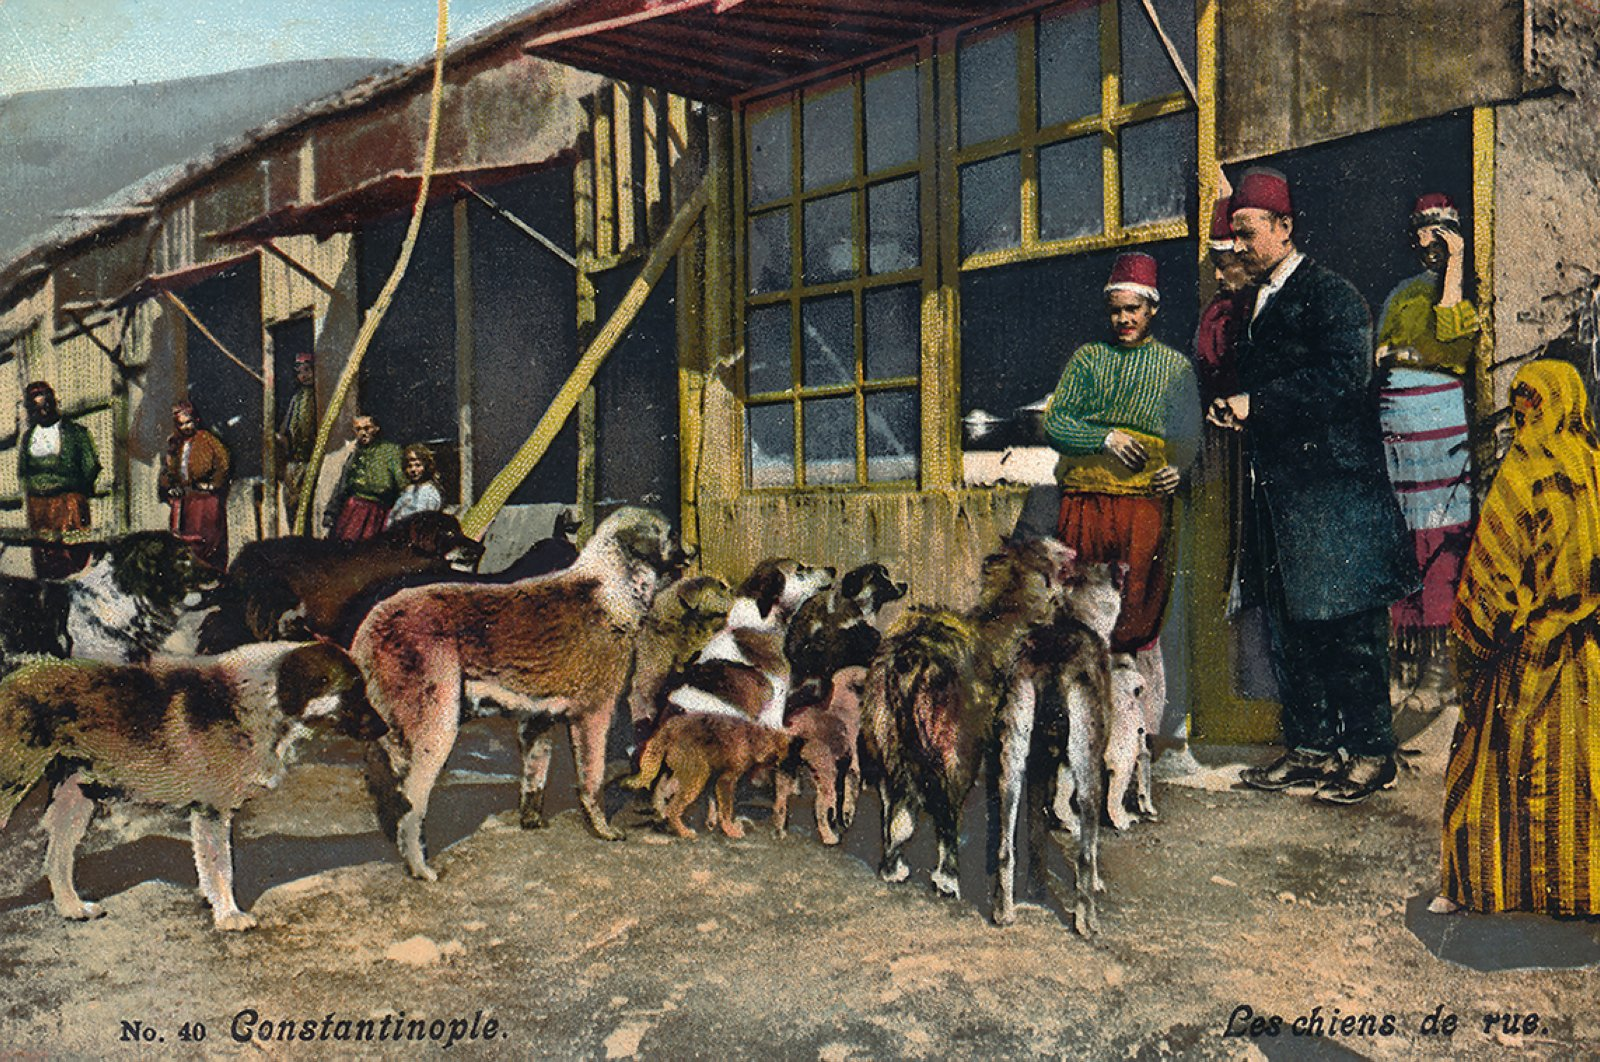 The exhibition traces the history of street dogs through photographs, travel journals, postcards, magazines and engravings. (Photos Courtesy of Istanbul Research Institute)